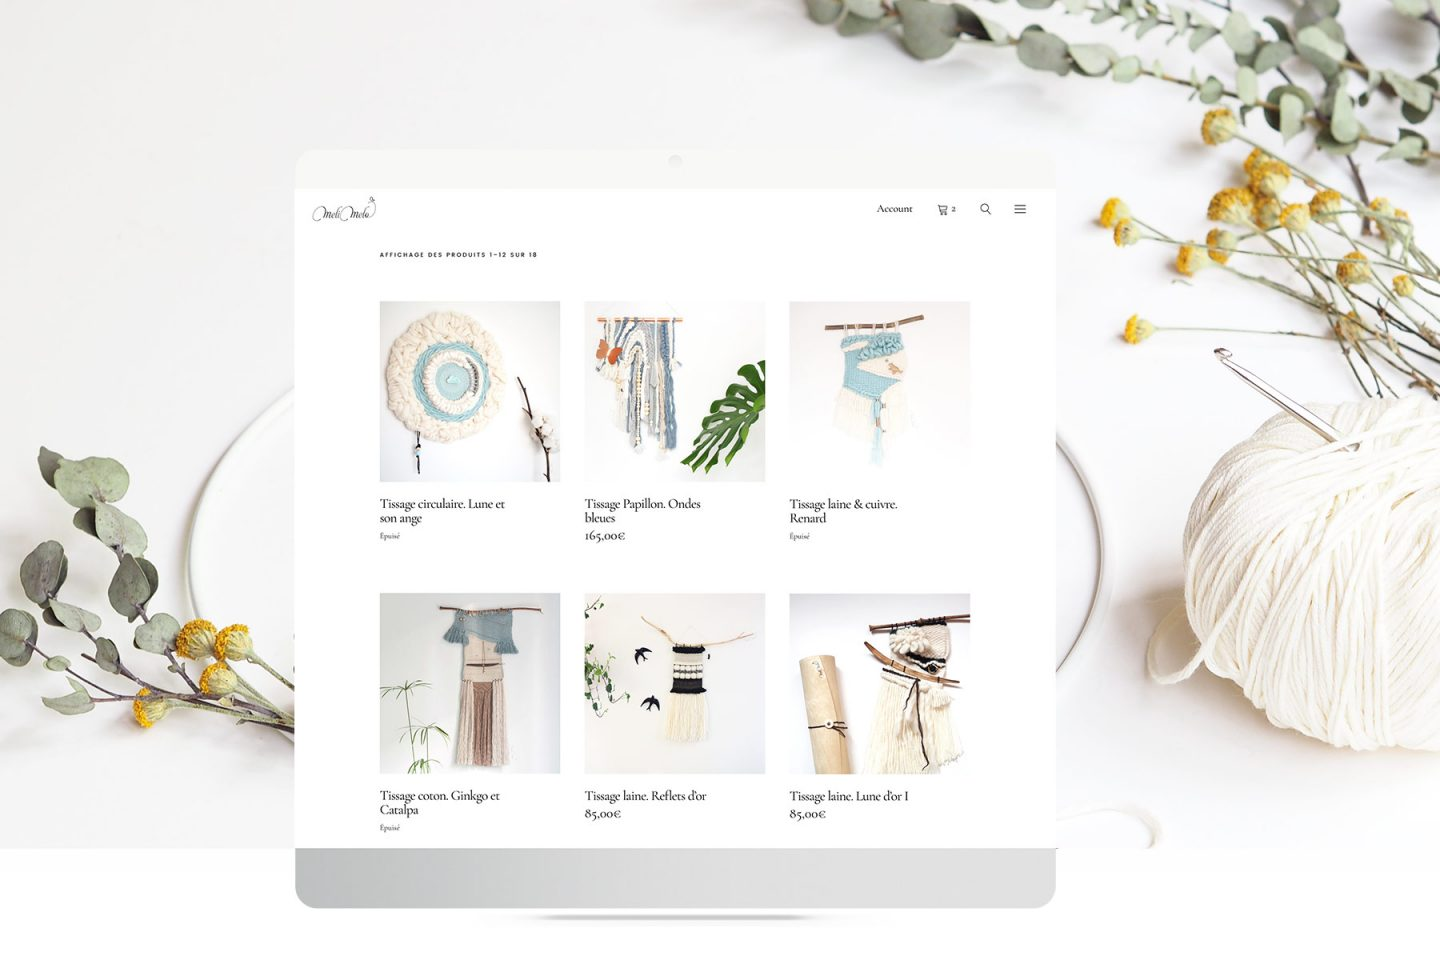 Sitio web Ecommerce Blog crafts DIY laboutiquedemelimelo MeliMelo HenkaWebs HenkaArquitectos